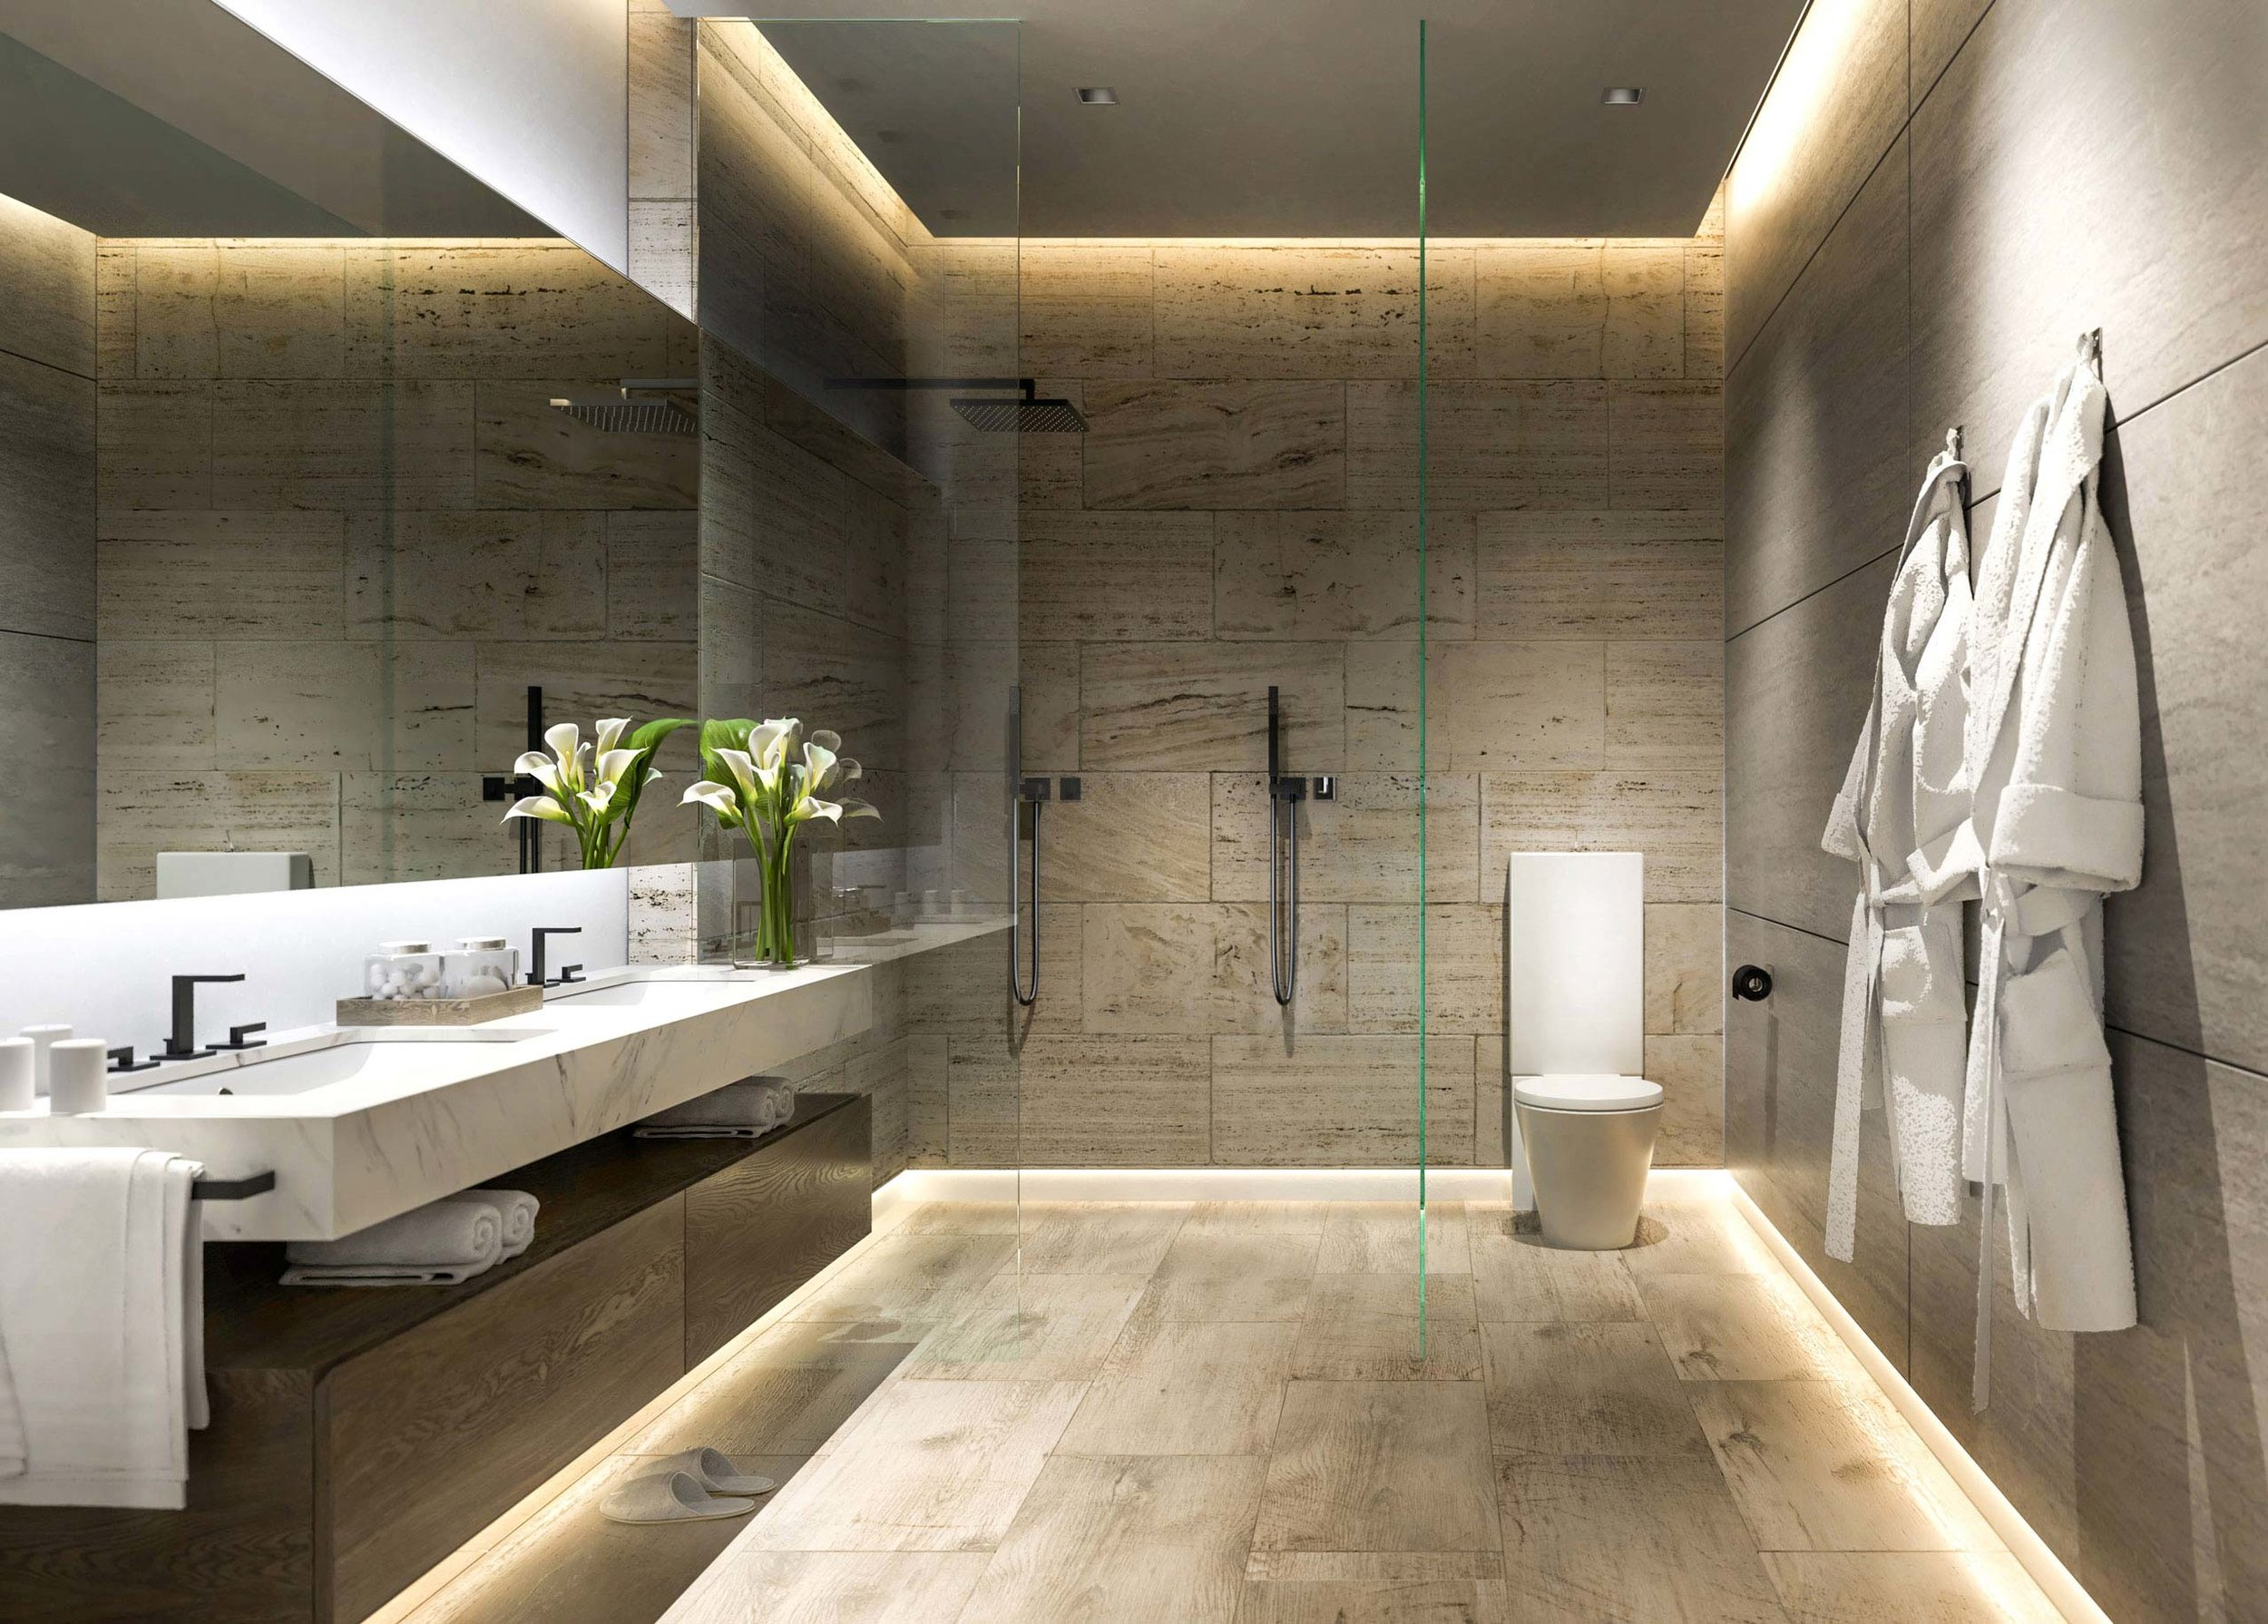 glasshaus-master-bathroom.jpg